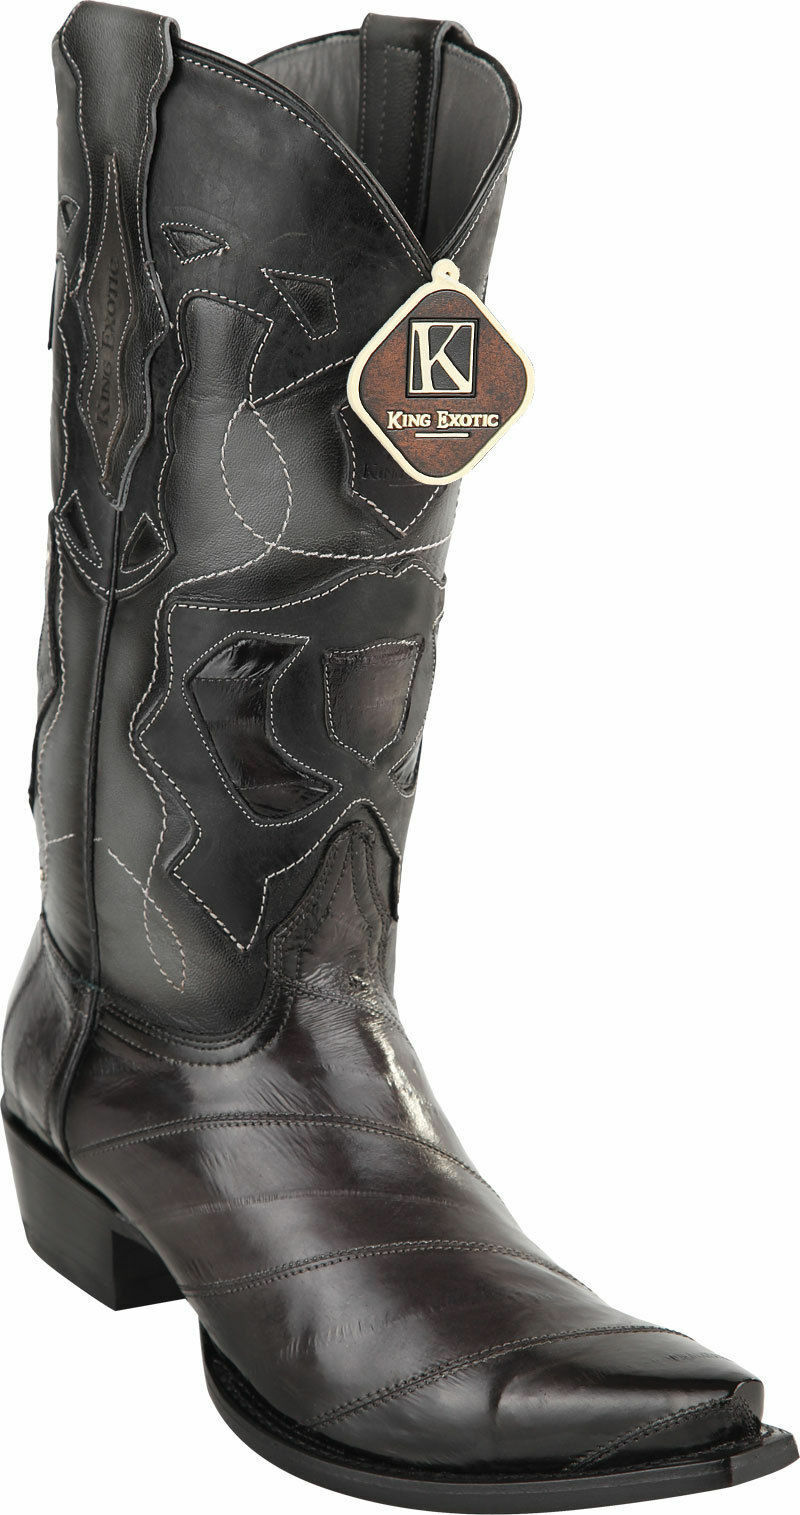 King exótico gris SNIP Toe Original Bota de vaquero occidental Anguila Extra Ancho 94RD0838